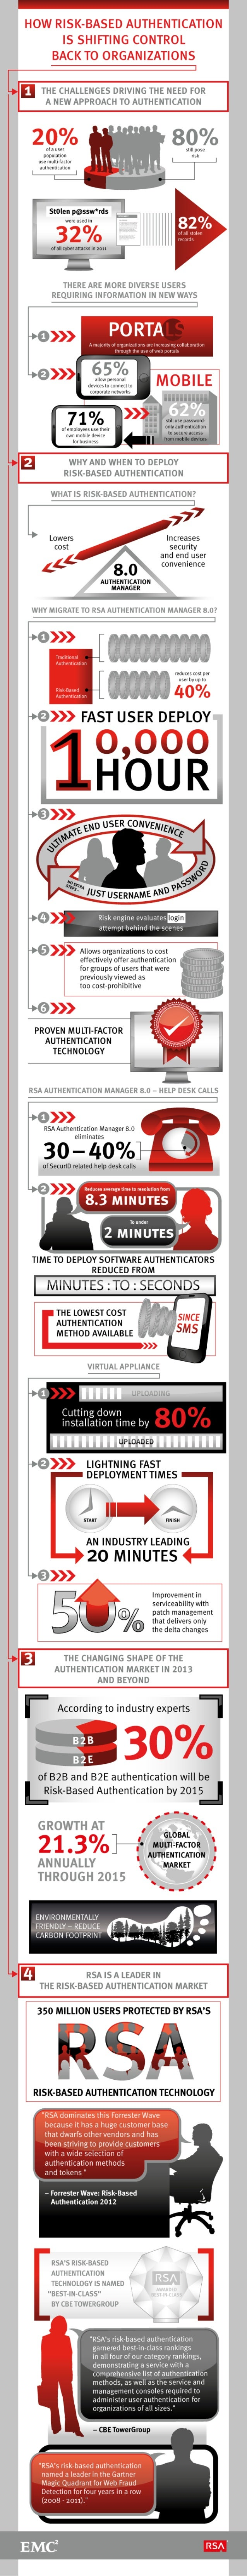 How Risk-Based Authentication is Shifting Control Back to Organizations